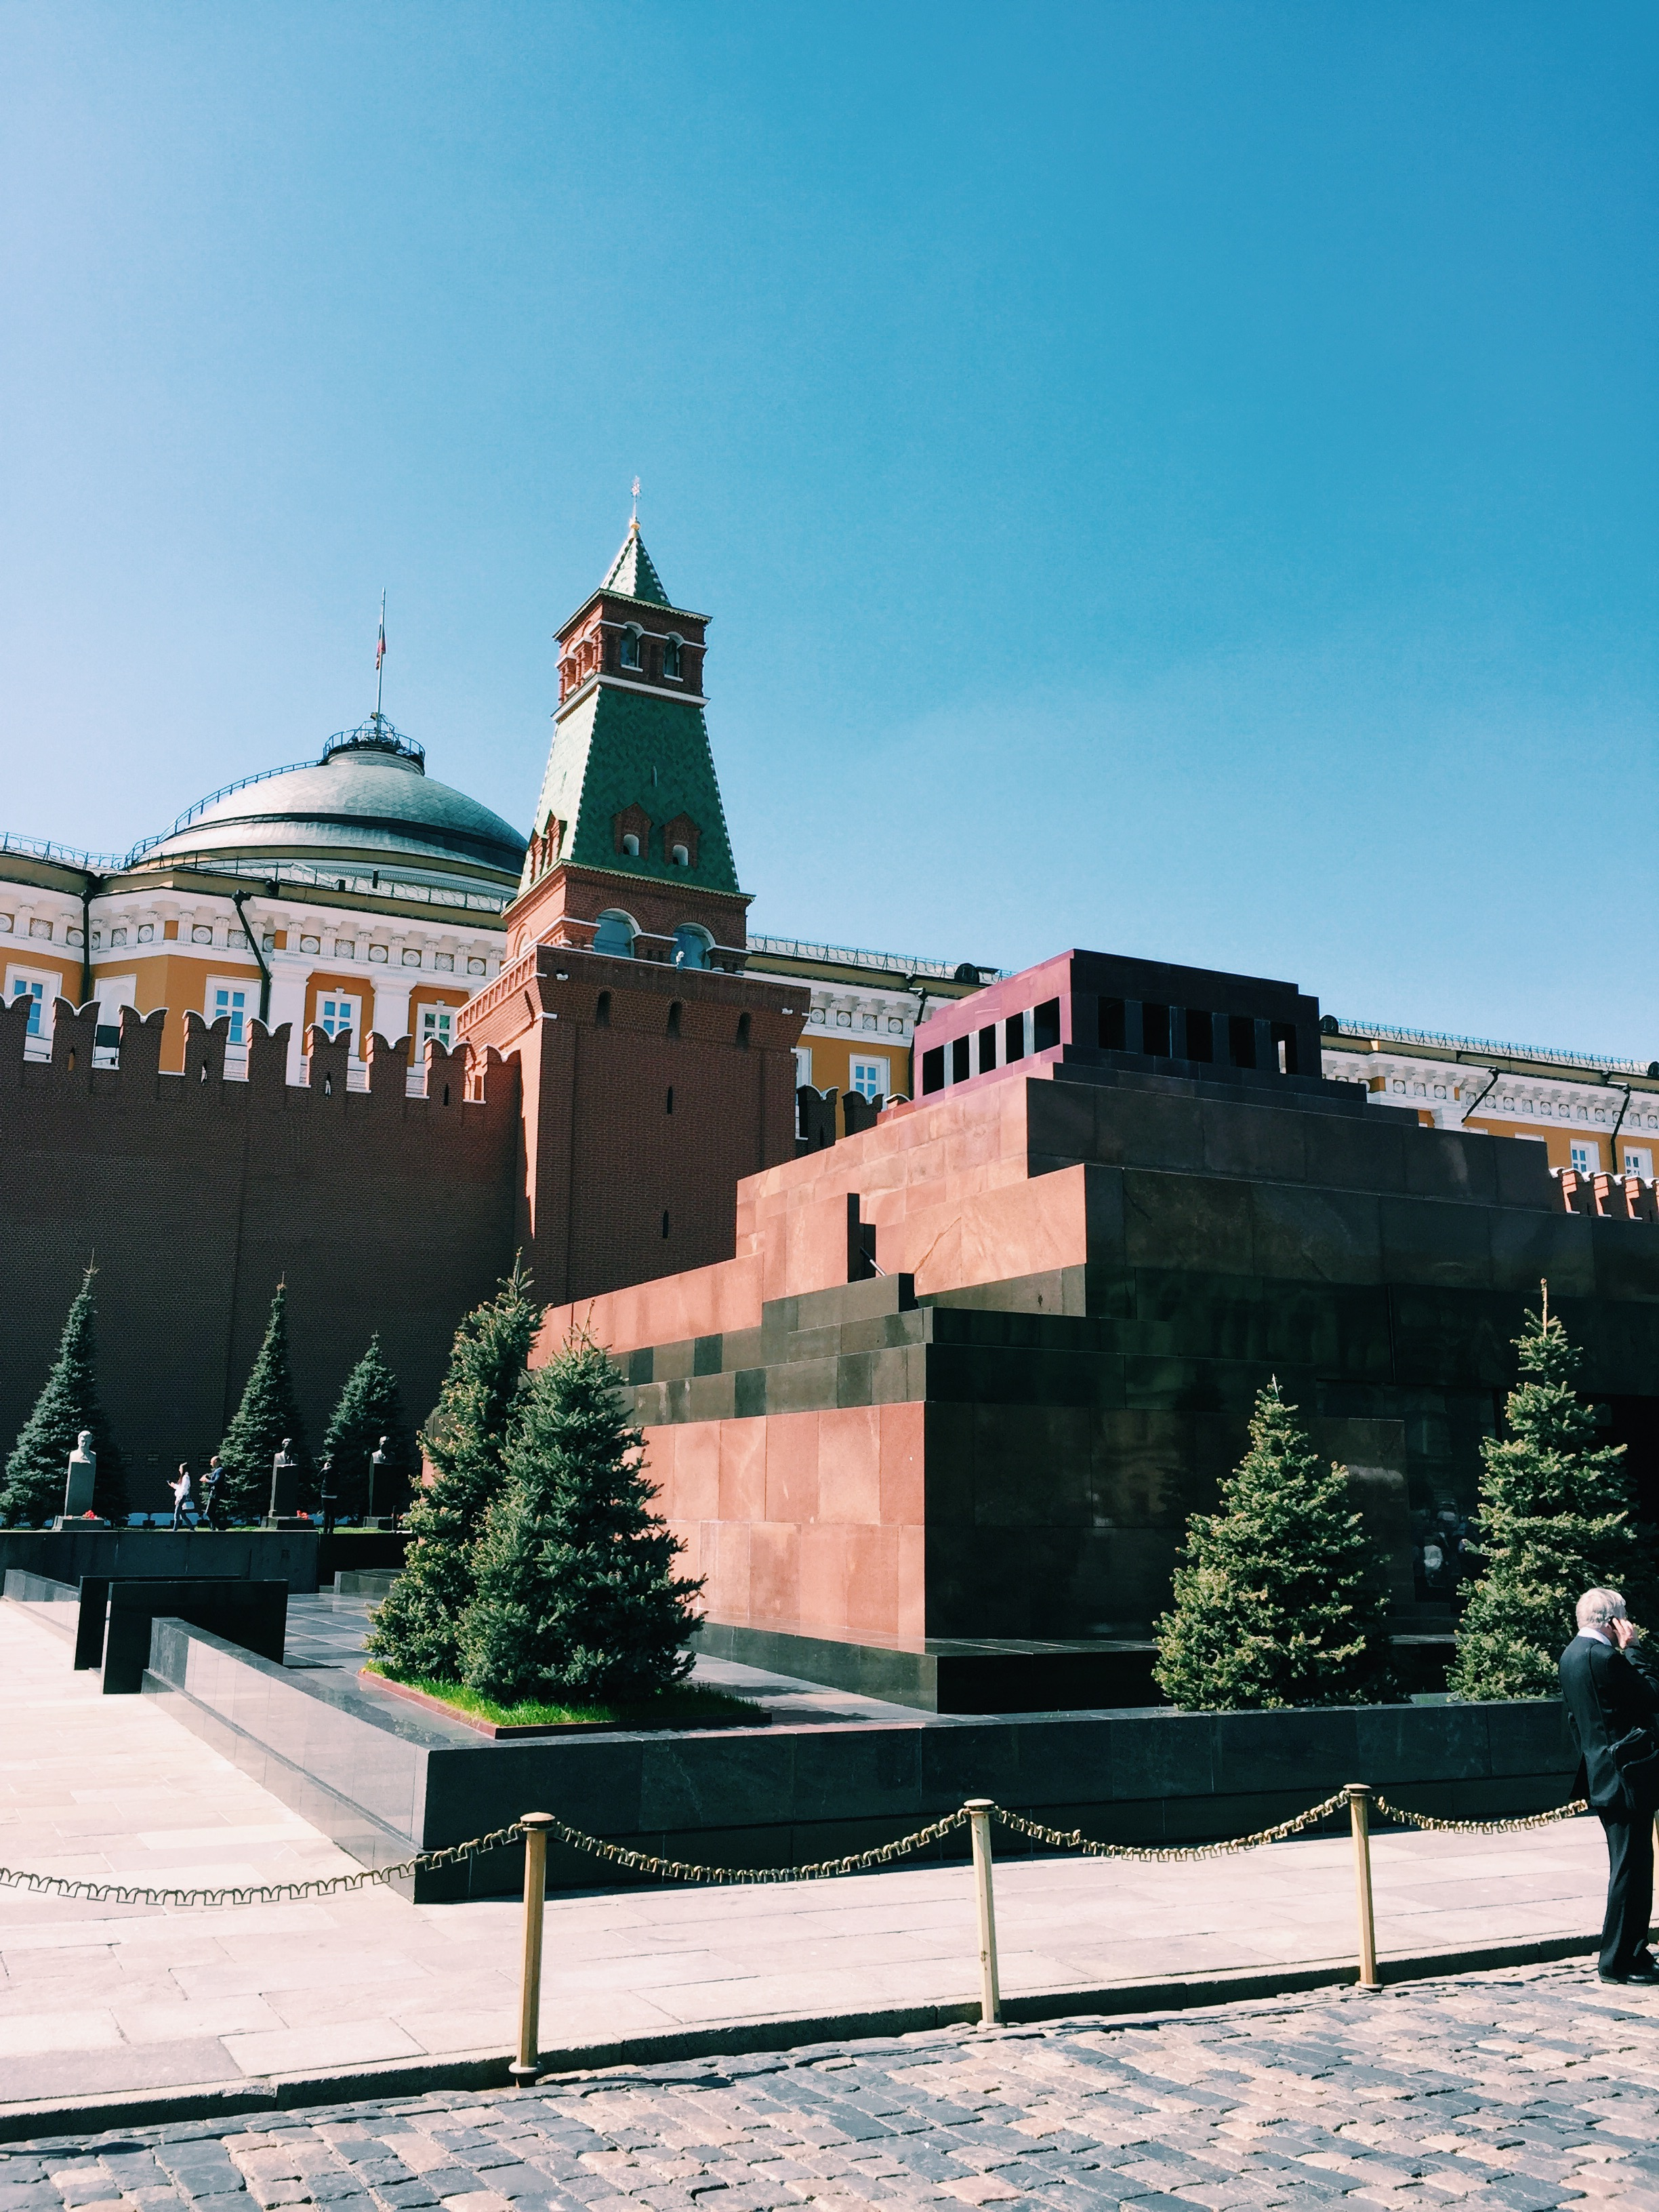 Lenin's Mausoleum - The structure to the right houses Lenin and behind it is the Kremlin wall, with famous Russian's buried in it and just outside of it.